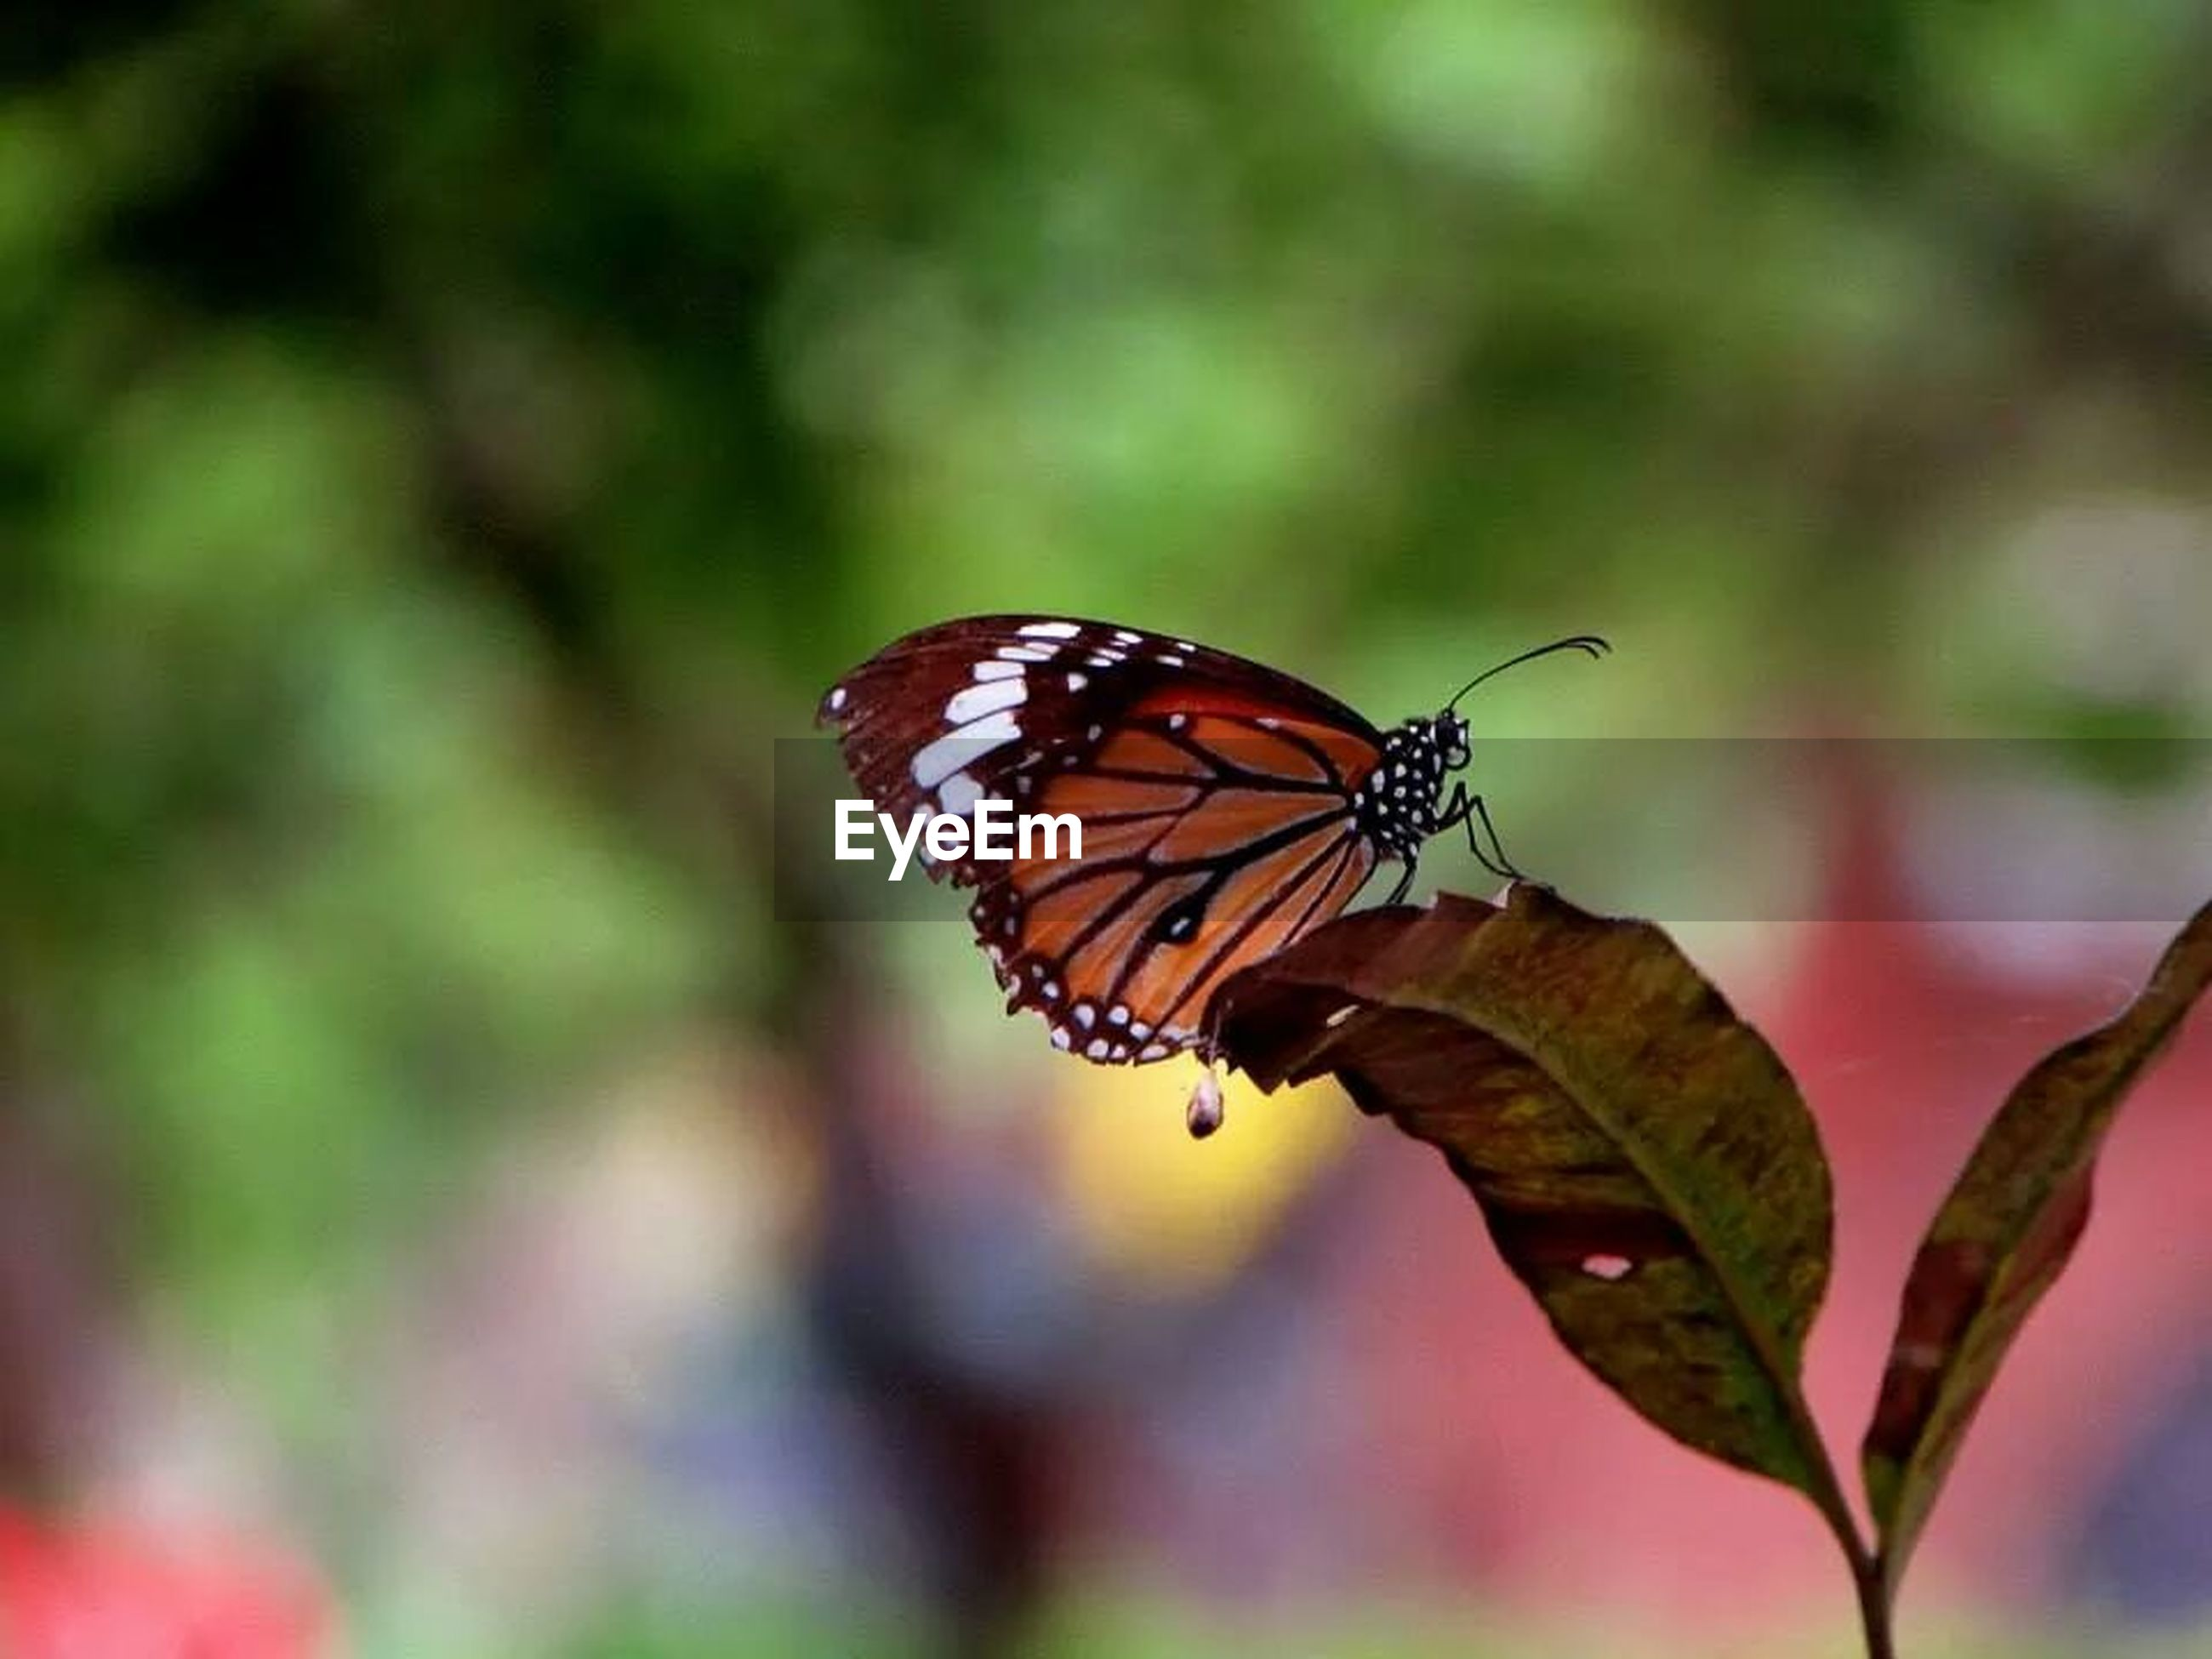 one animal, animals in the wild, animal themes, insect, wildlife, butterfly - insect, focus on foreground, butterfly, close-up, leaf, animal markings, orange color, natural pattern, nature, beauty in nature, perching, plant, animal wing, red, outdoors